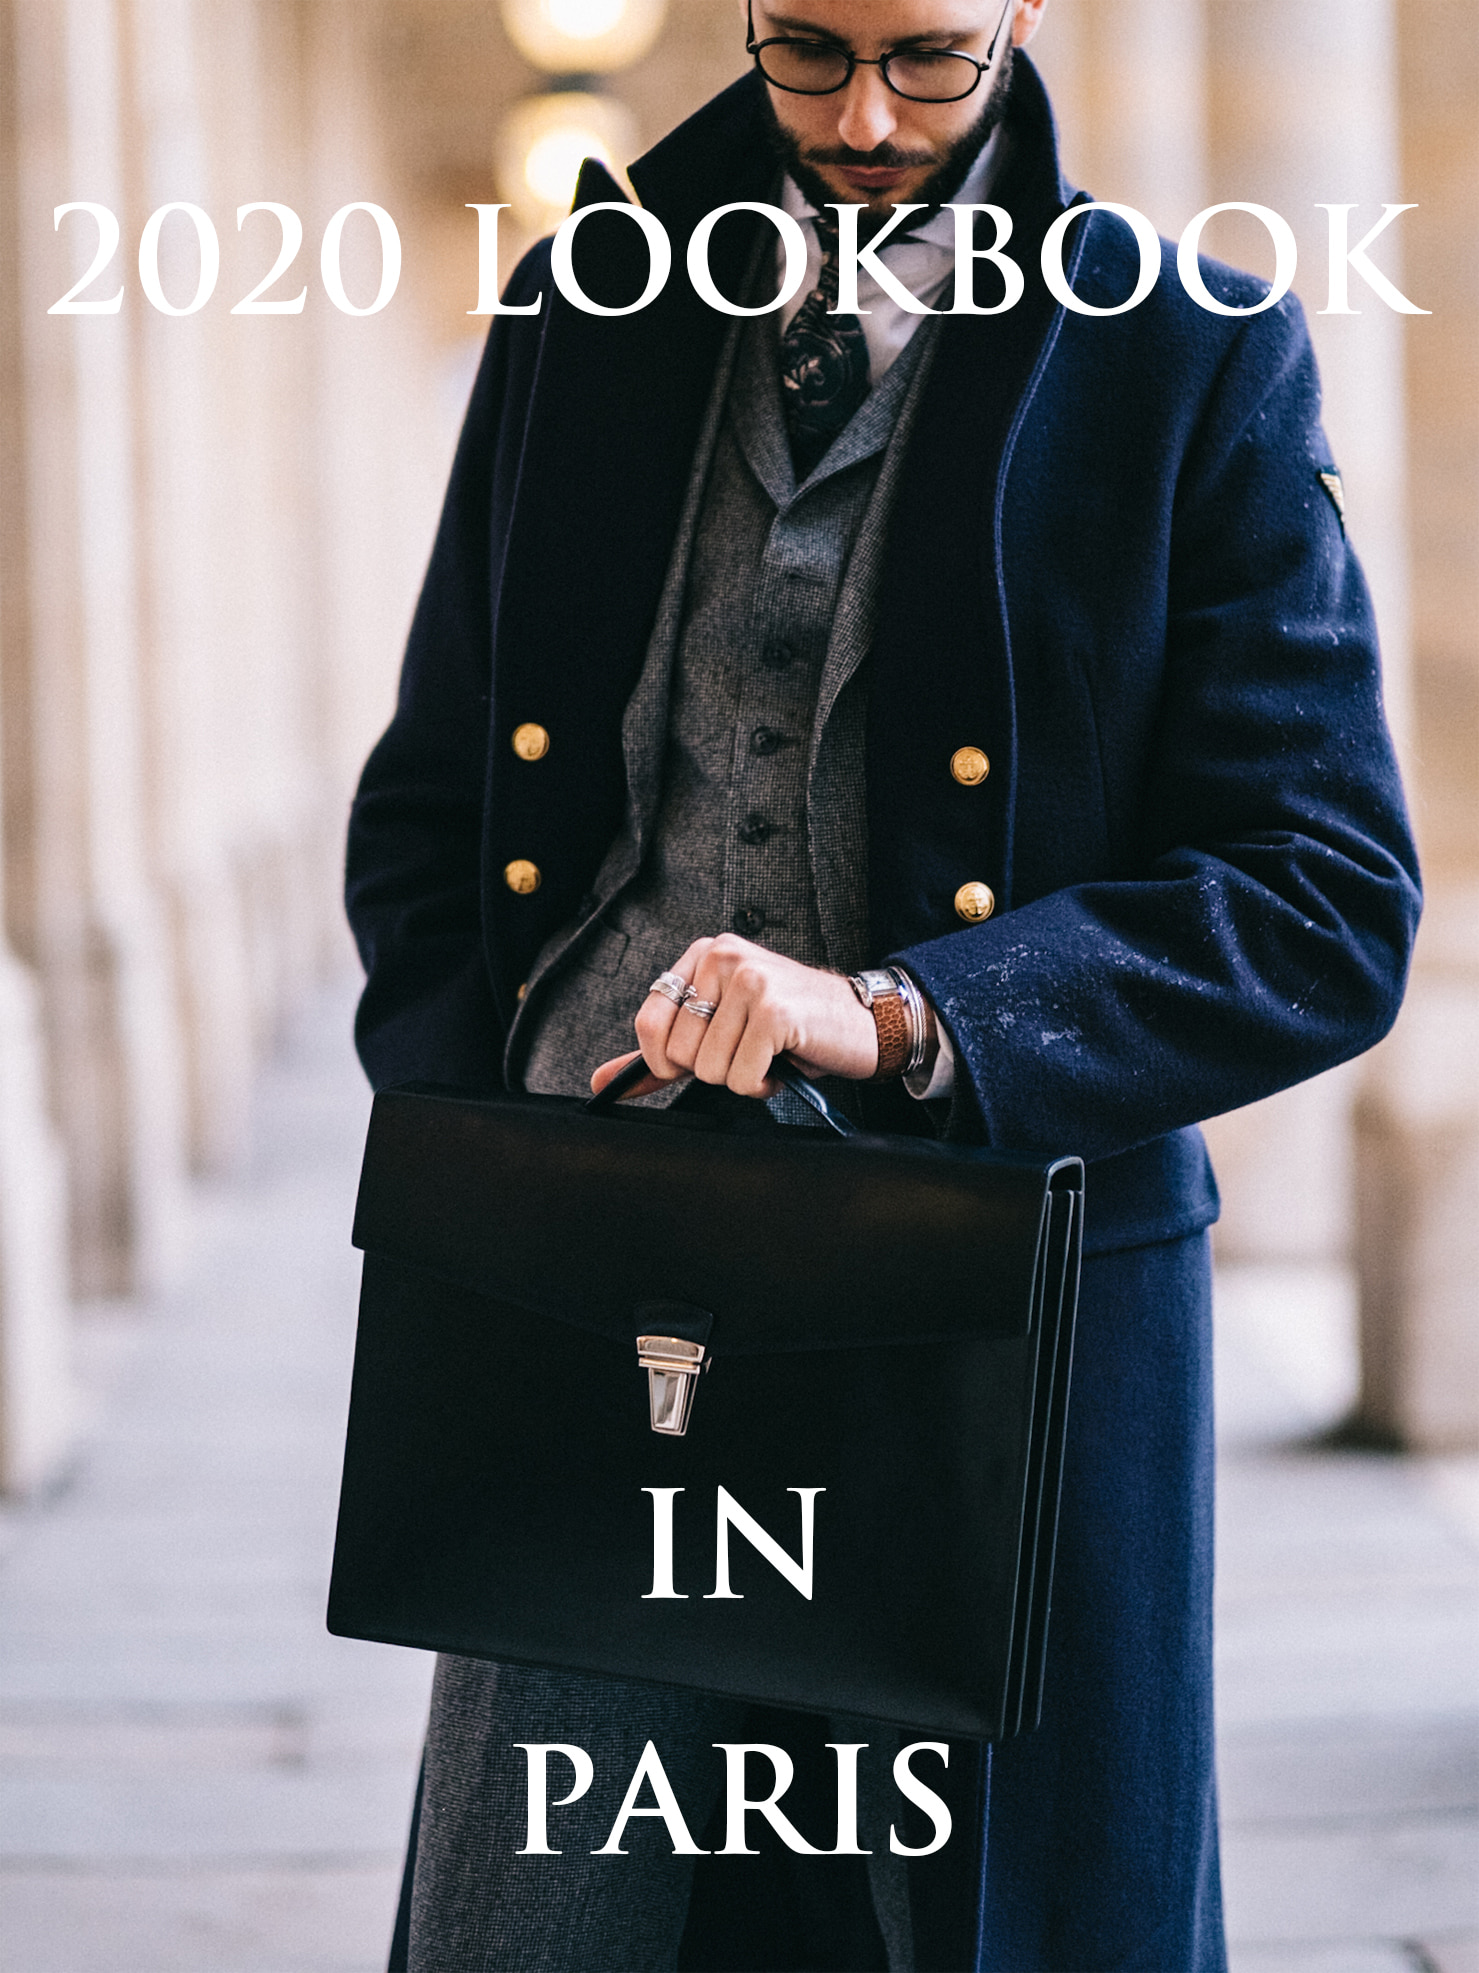 2020 LOOKBOOK 'IN PARIS'